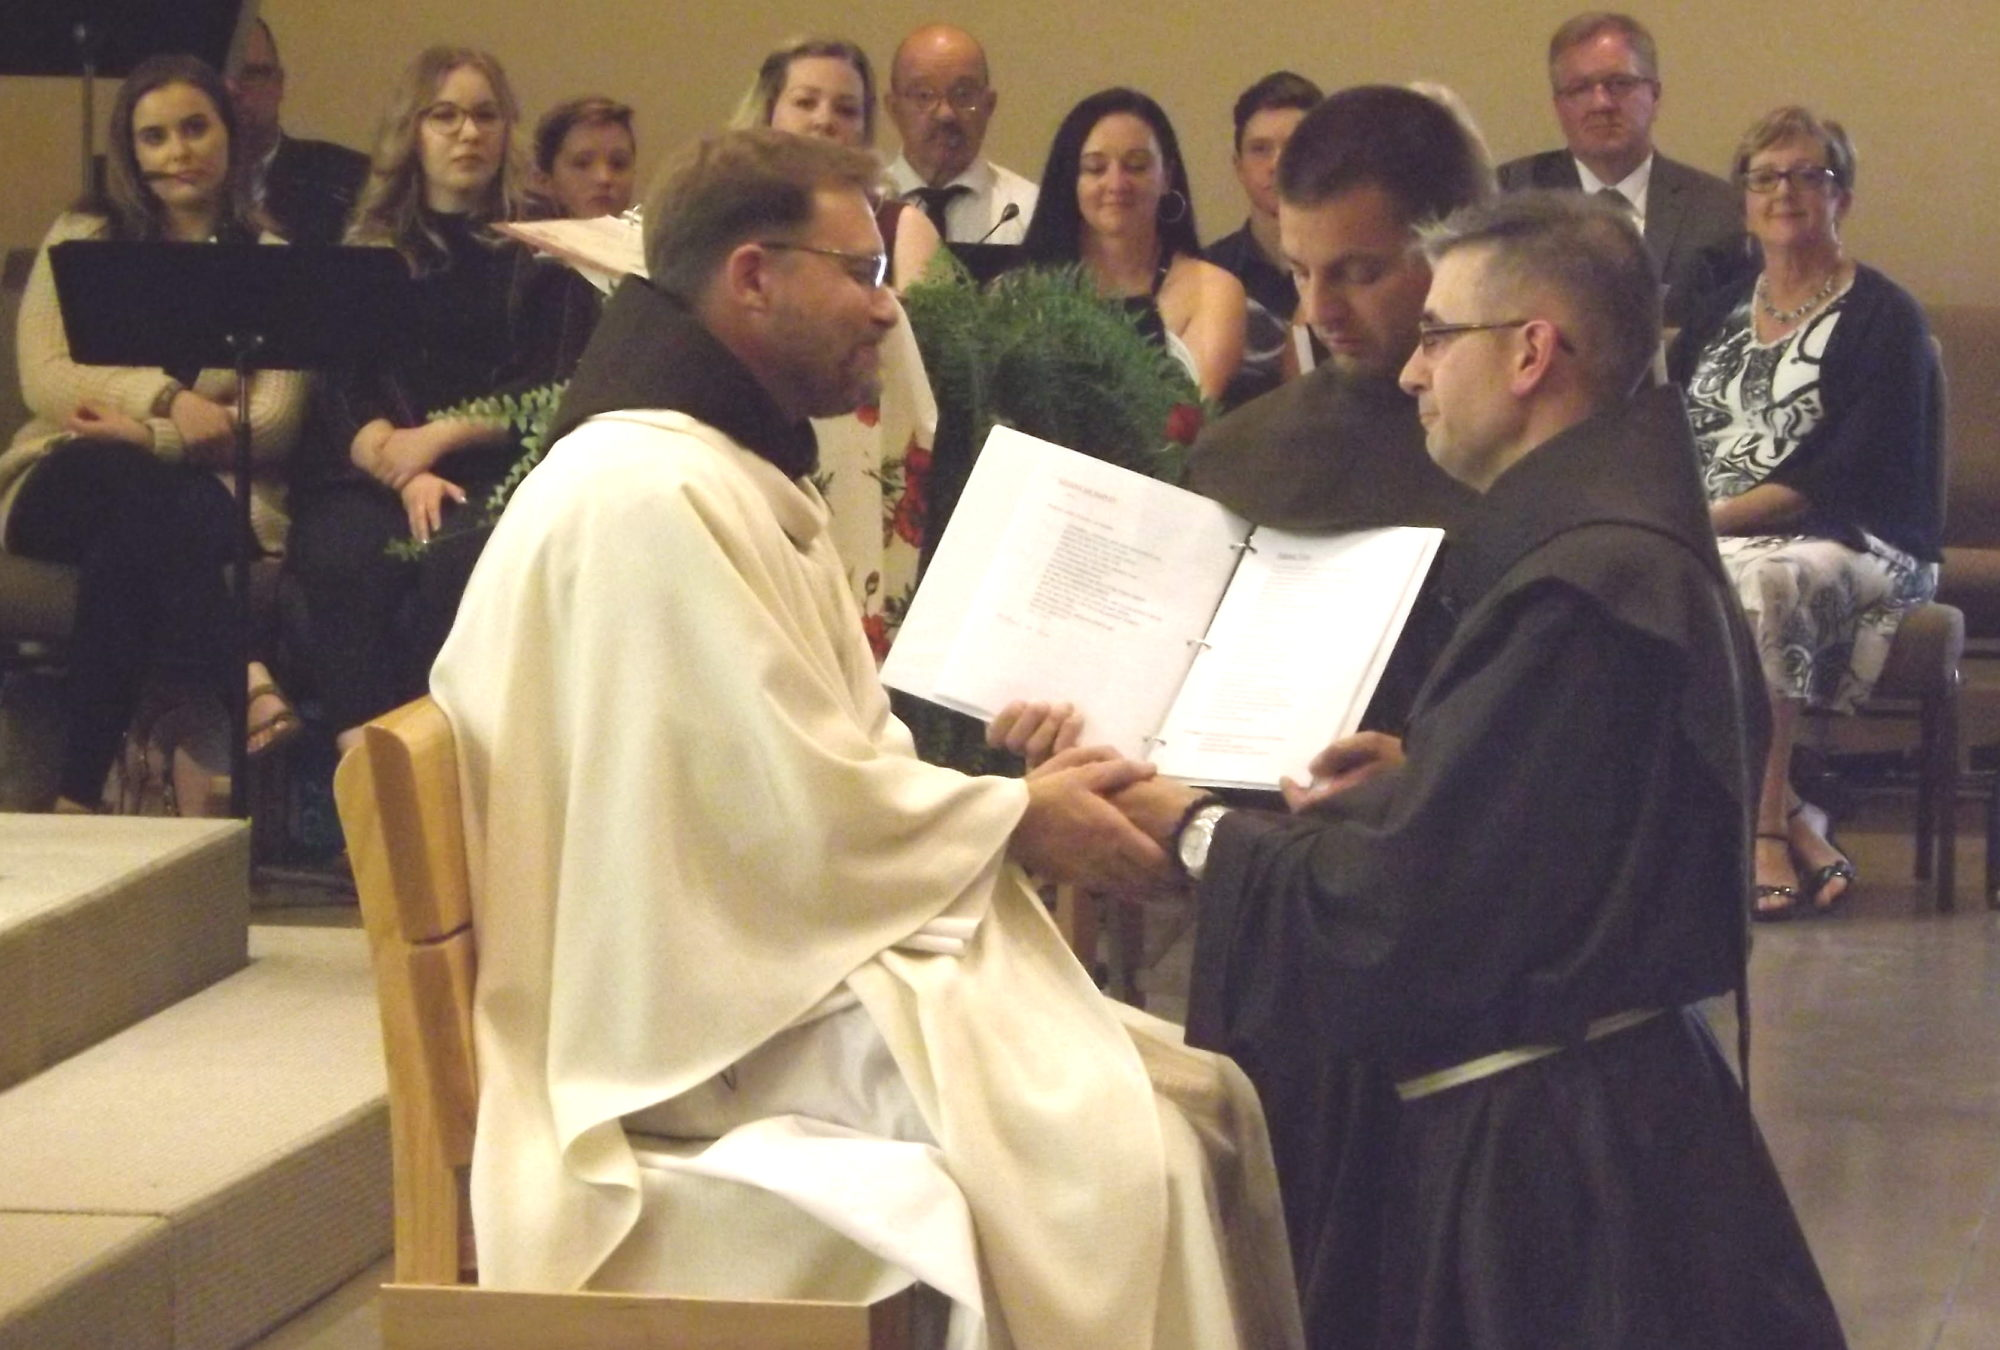 Solemn Vows by Brother Michael Perras